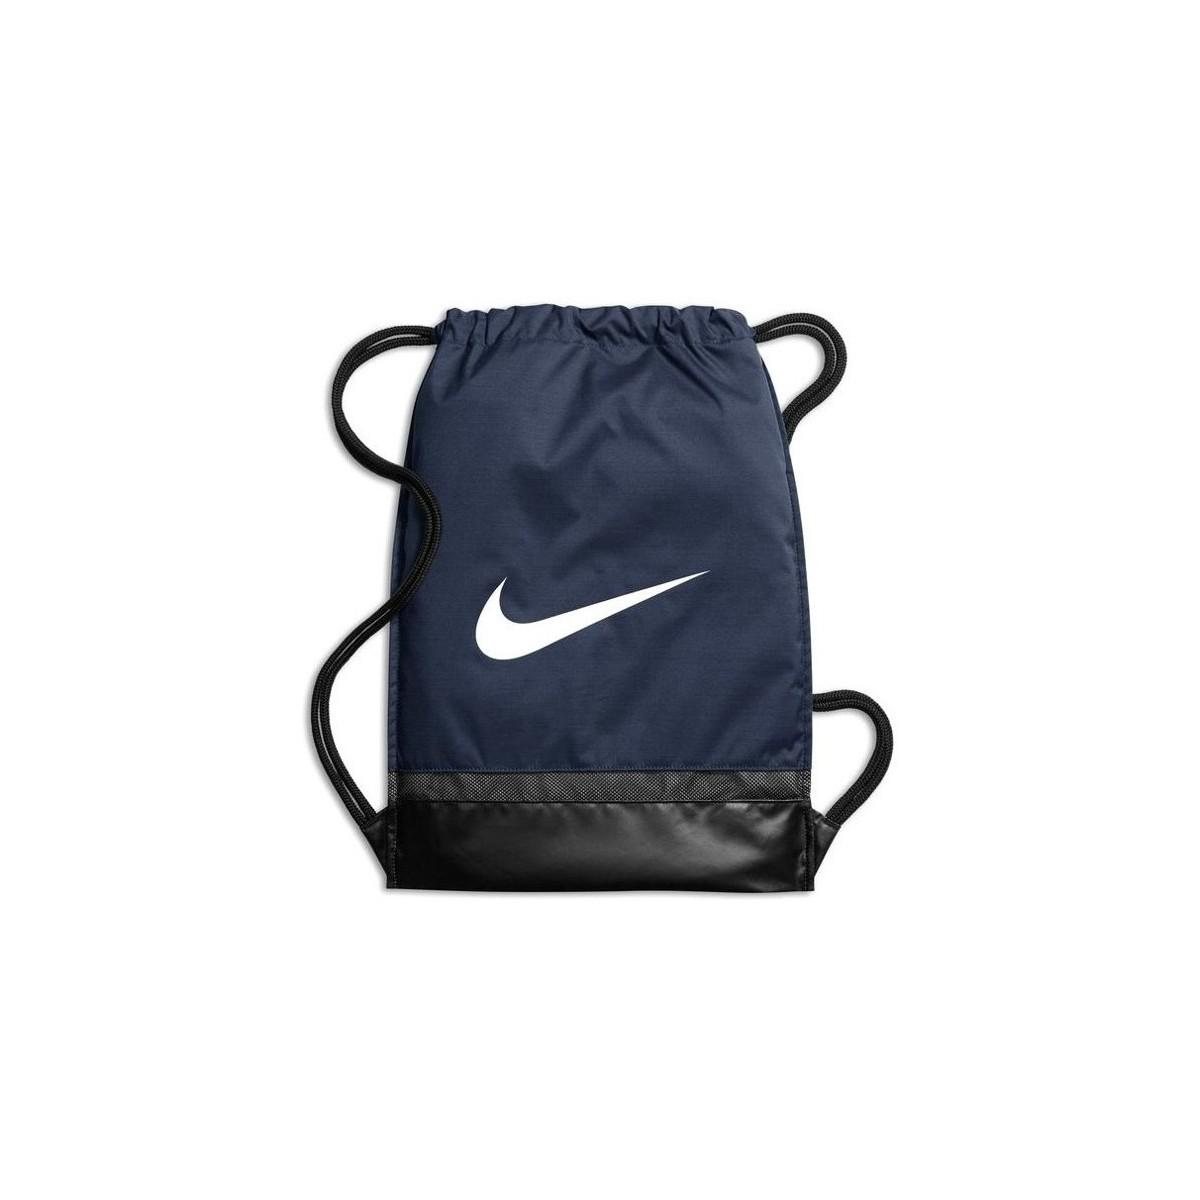 8190164ef3a6c6 Nike Brasilia Gymsack Navy Women s Backpack In Yellow in Yellow - Lyst